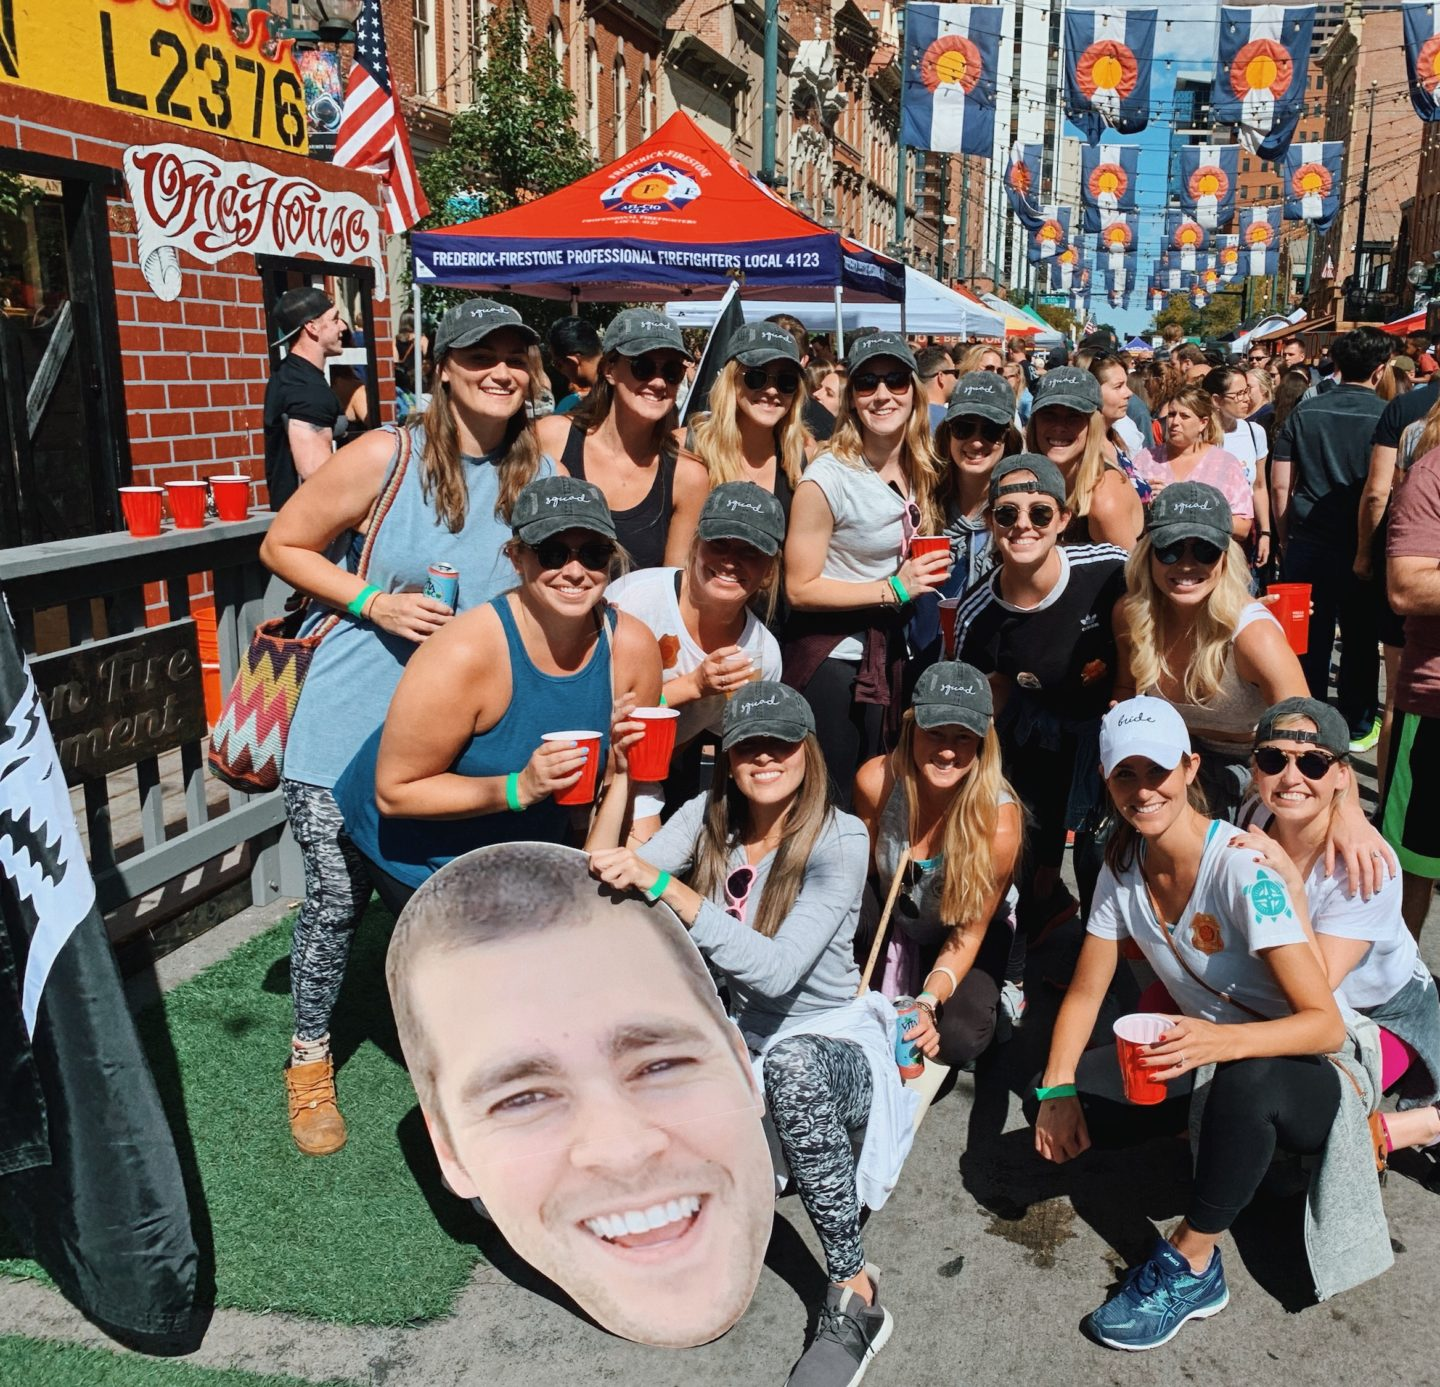 Enjoying the Denver Chili Festival downtown with the bachelorette group